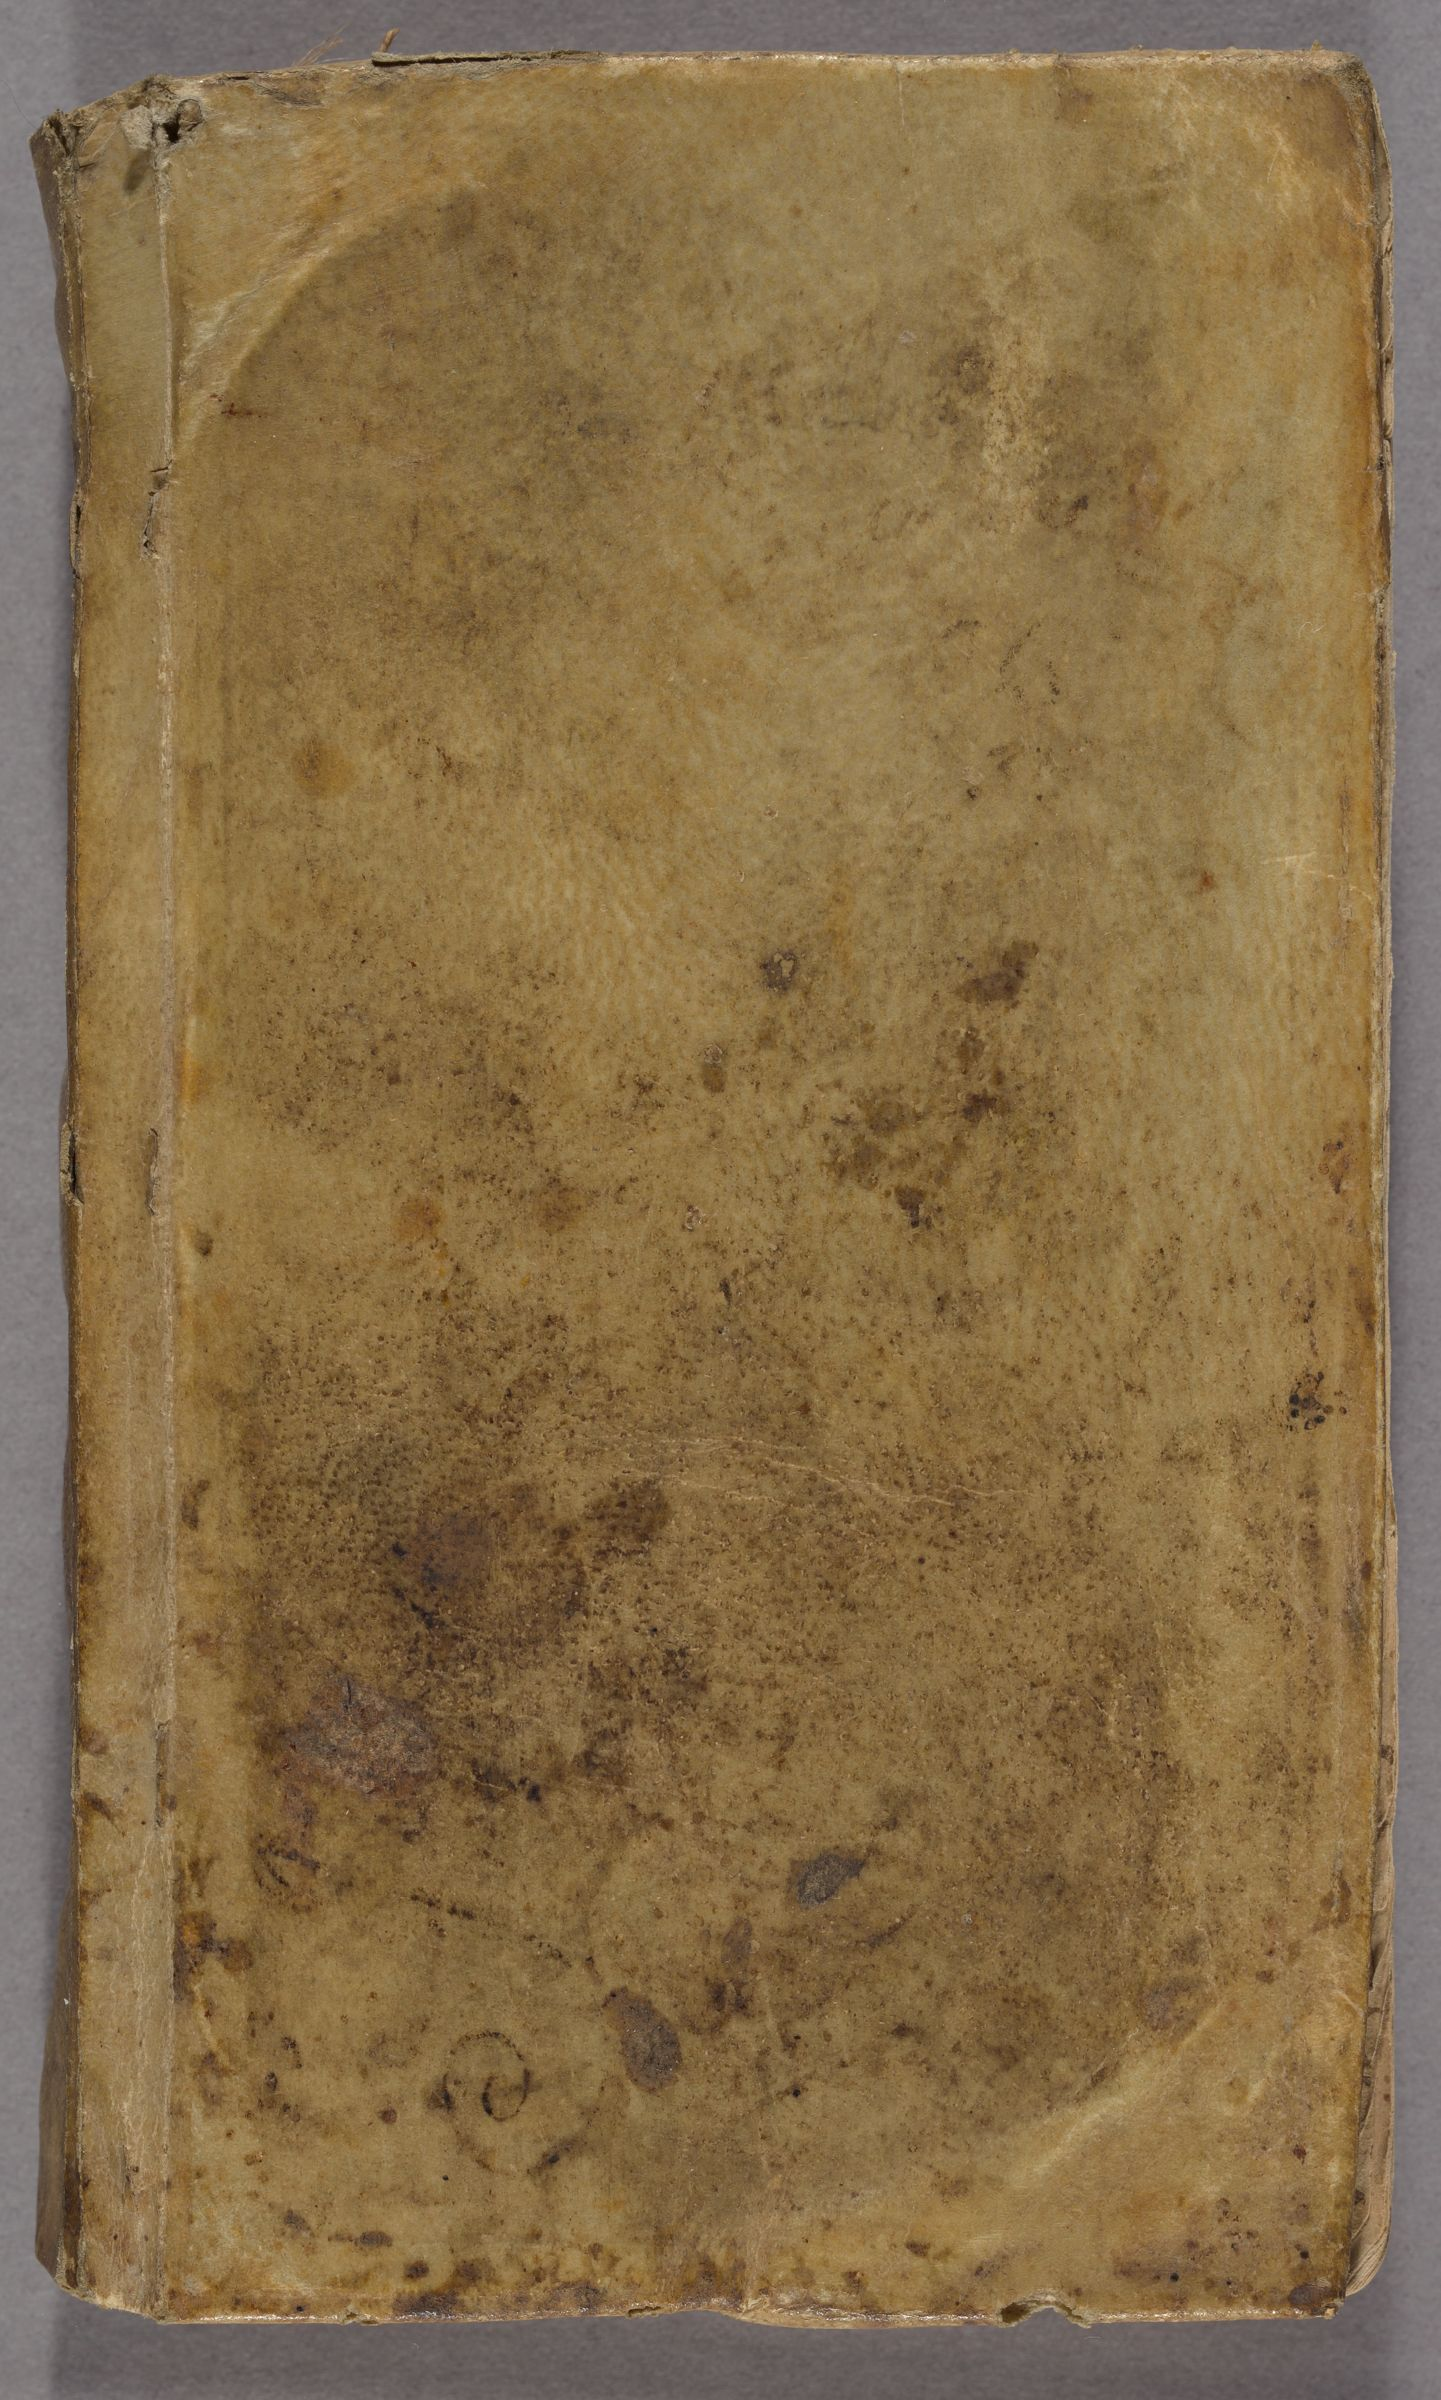 Account book of Benjamin Gale, 1740-1748 (inclusive)